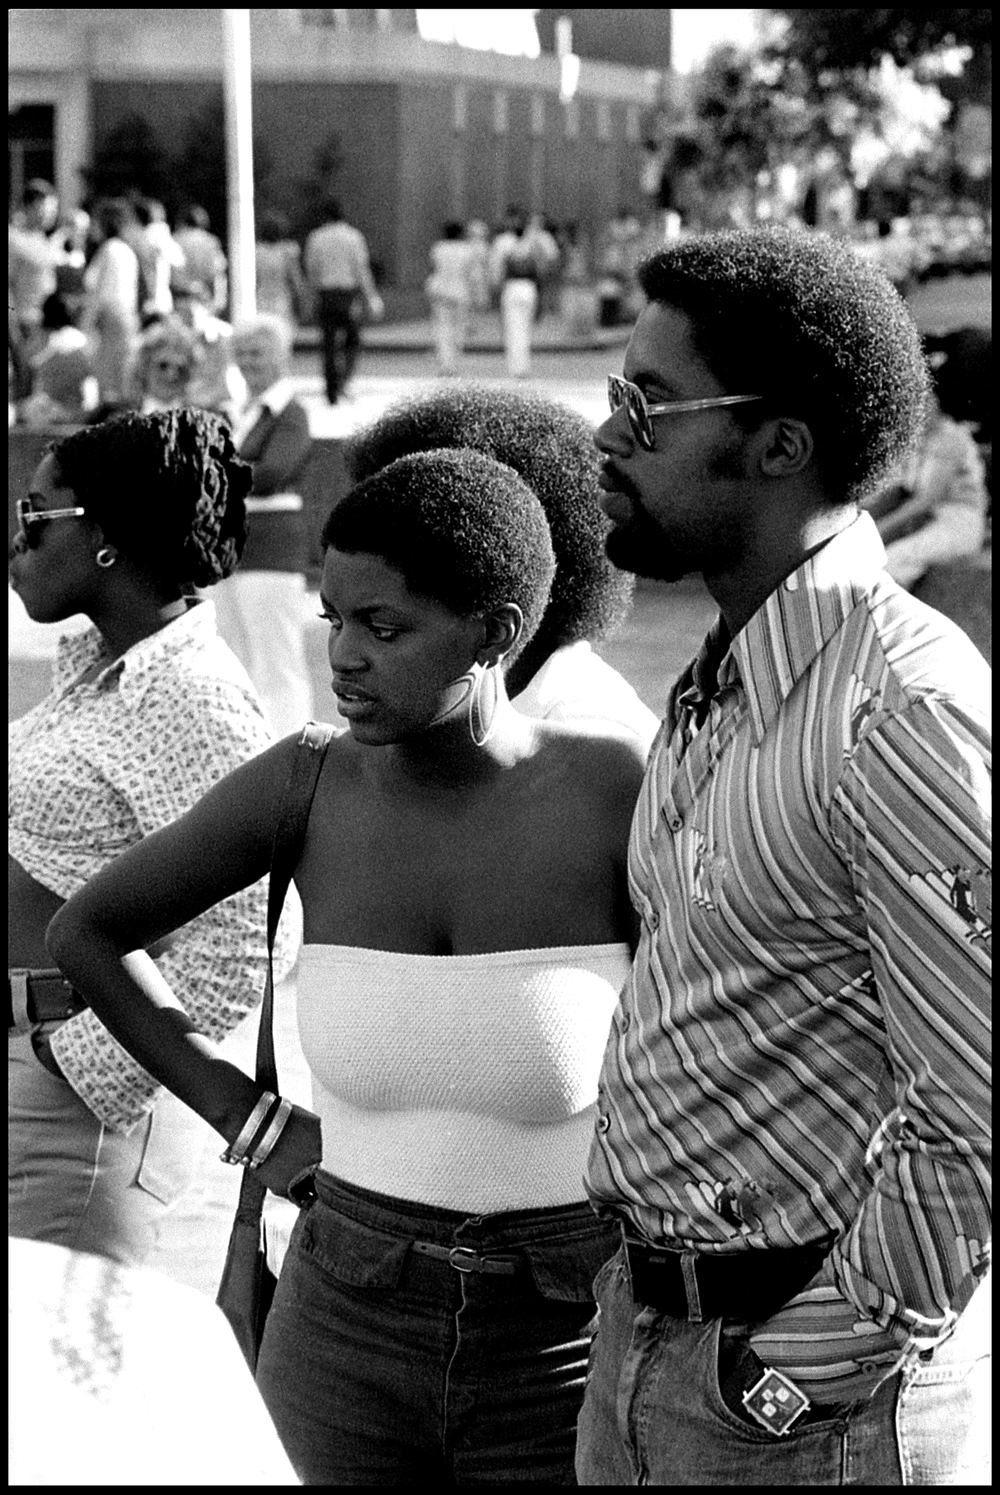 Washington Square, New York City 1972  photo  Frank Habicht